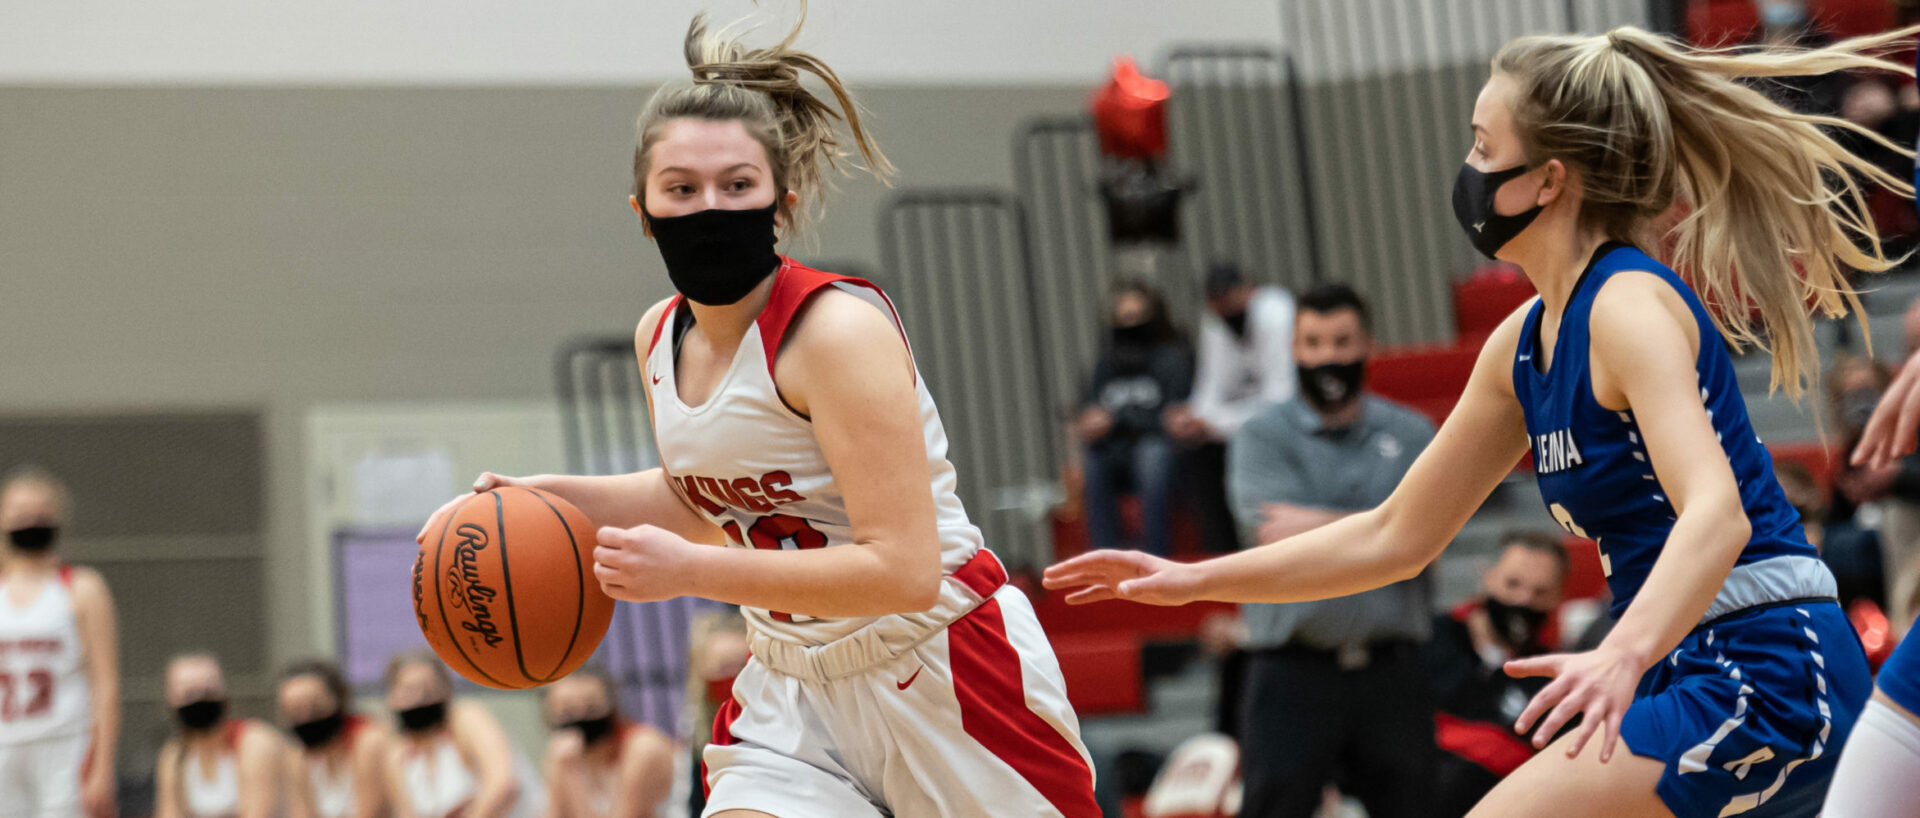 Tuesday girls hoops roundup: Muskegon edges Reeths-Puffer 40-37; Kent City clinches CSAA Silver Division championship